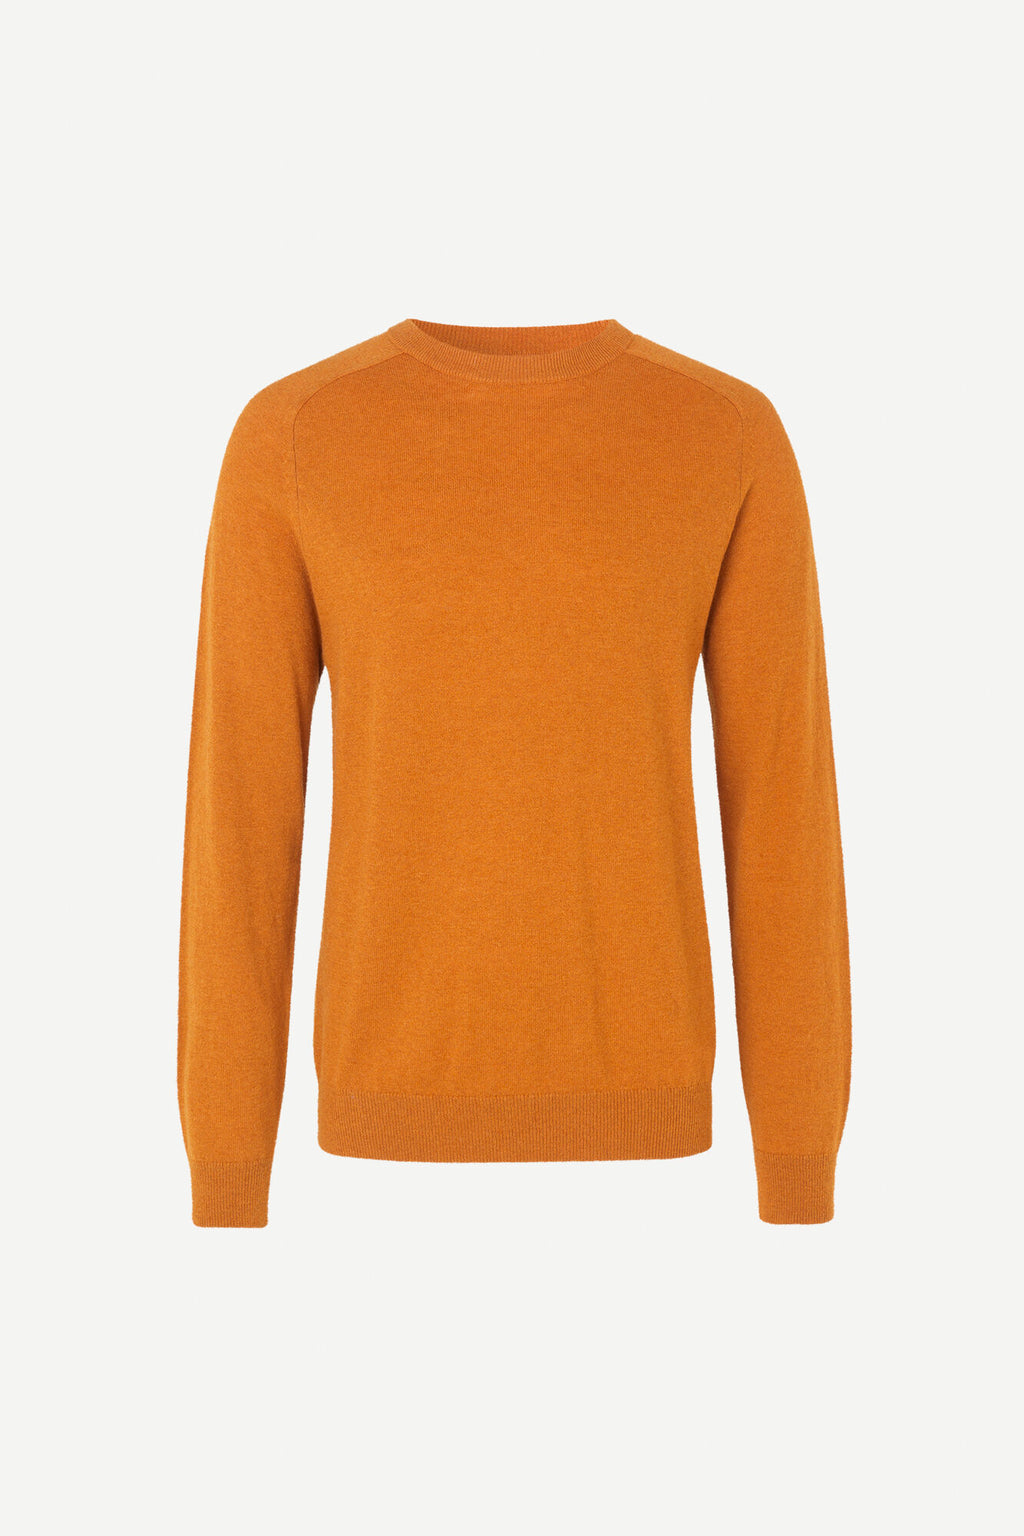 Samsoe samsoe gillis crew neck 132 honey ginger